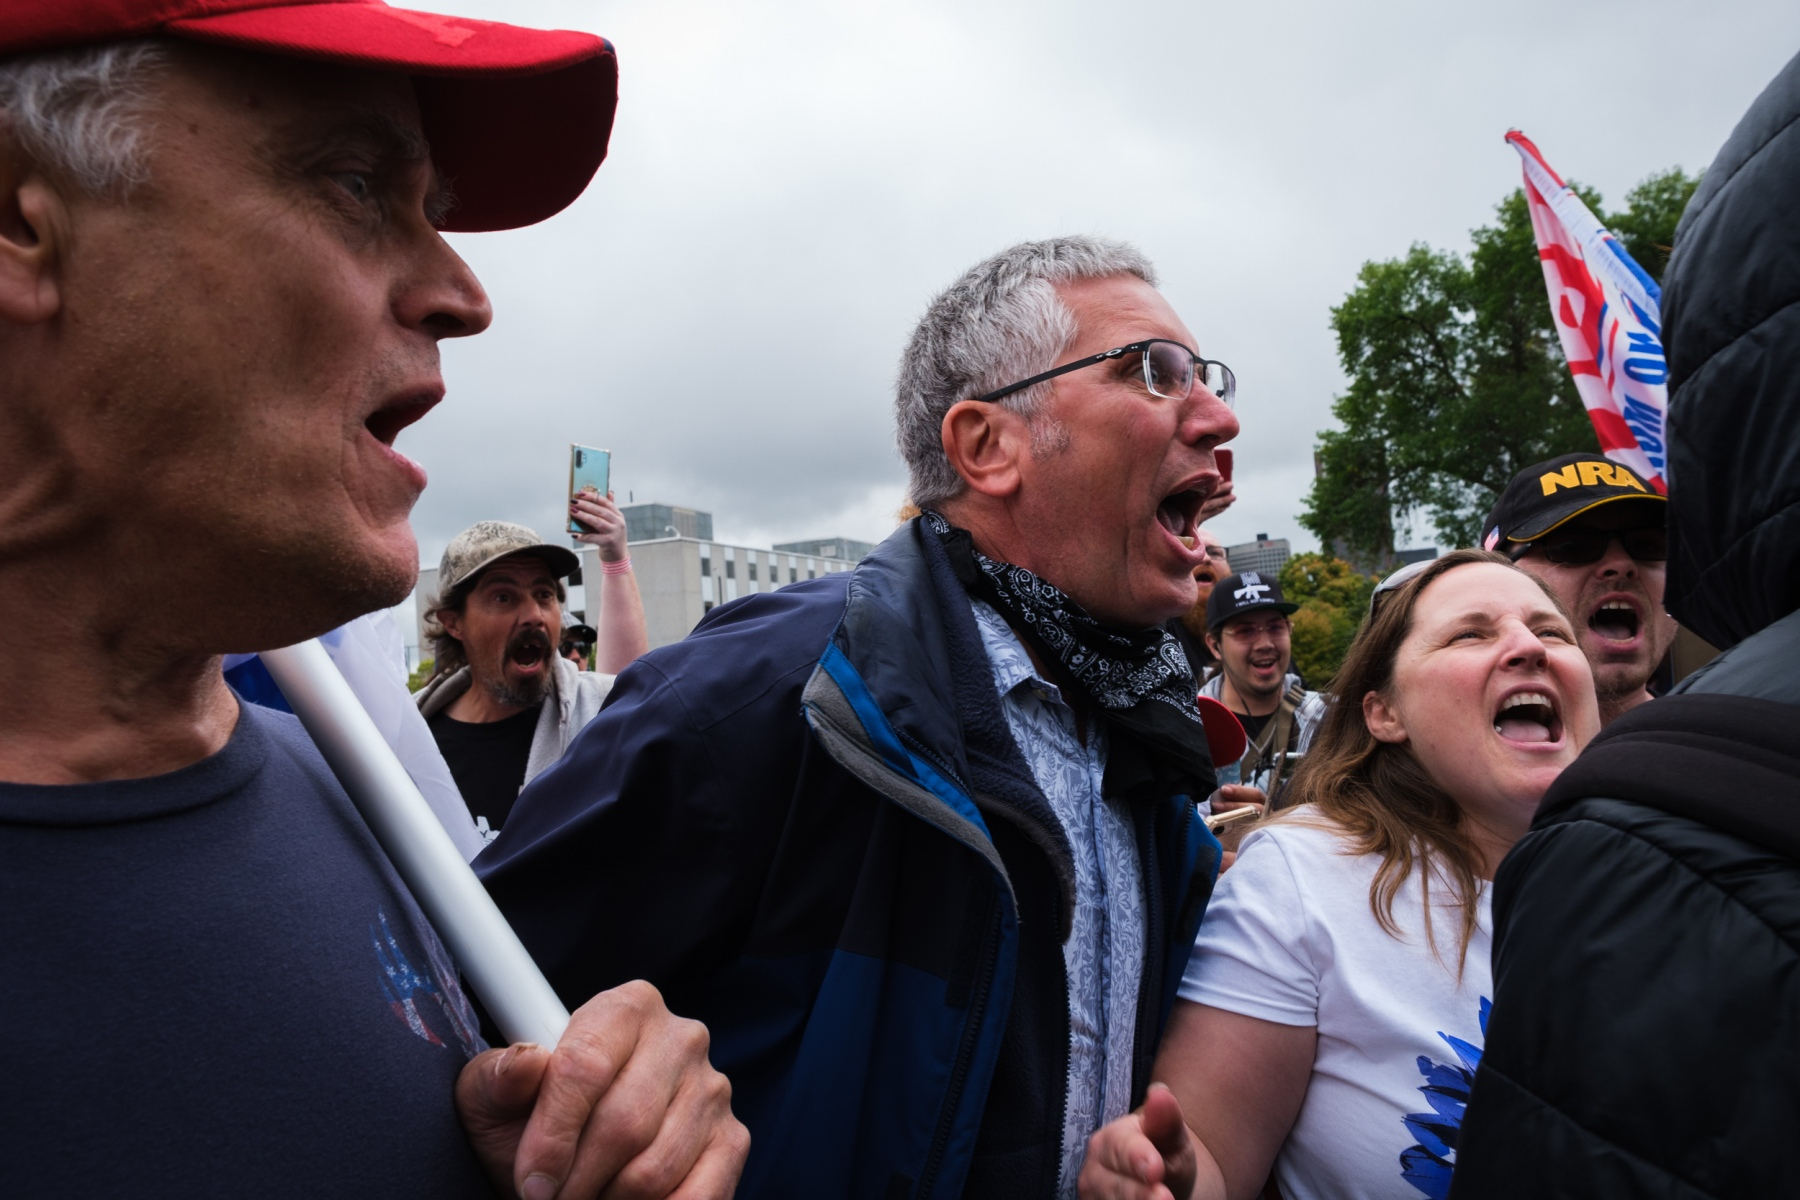 Trump supporters gathered to show support for the president and protest the state's coronavirus restrictions shout at a counterprotestor at the Minnesota state capitol in Saint Paul on September 12, 2020.